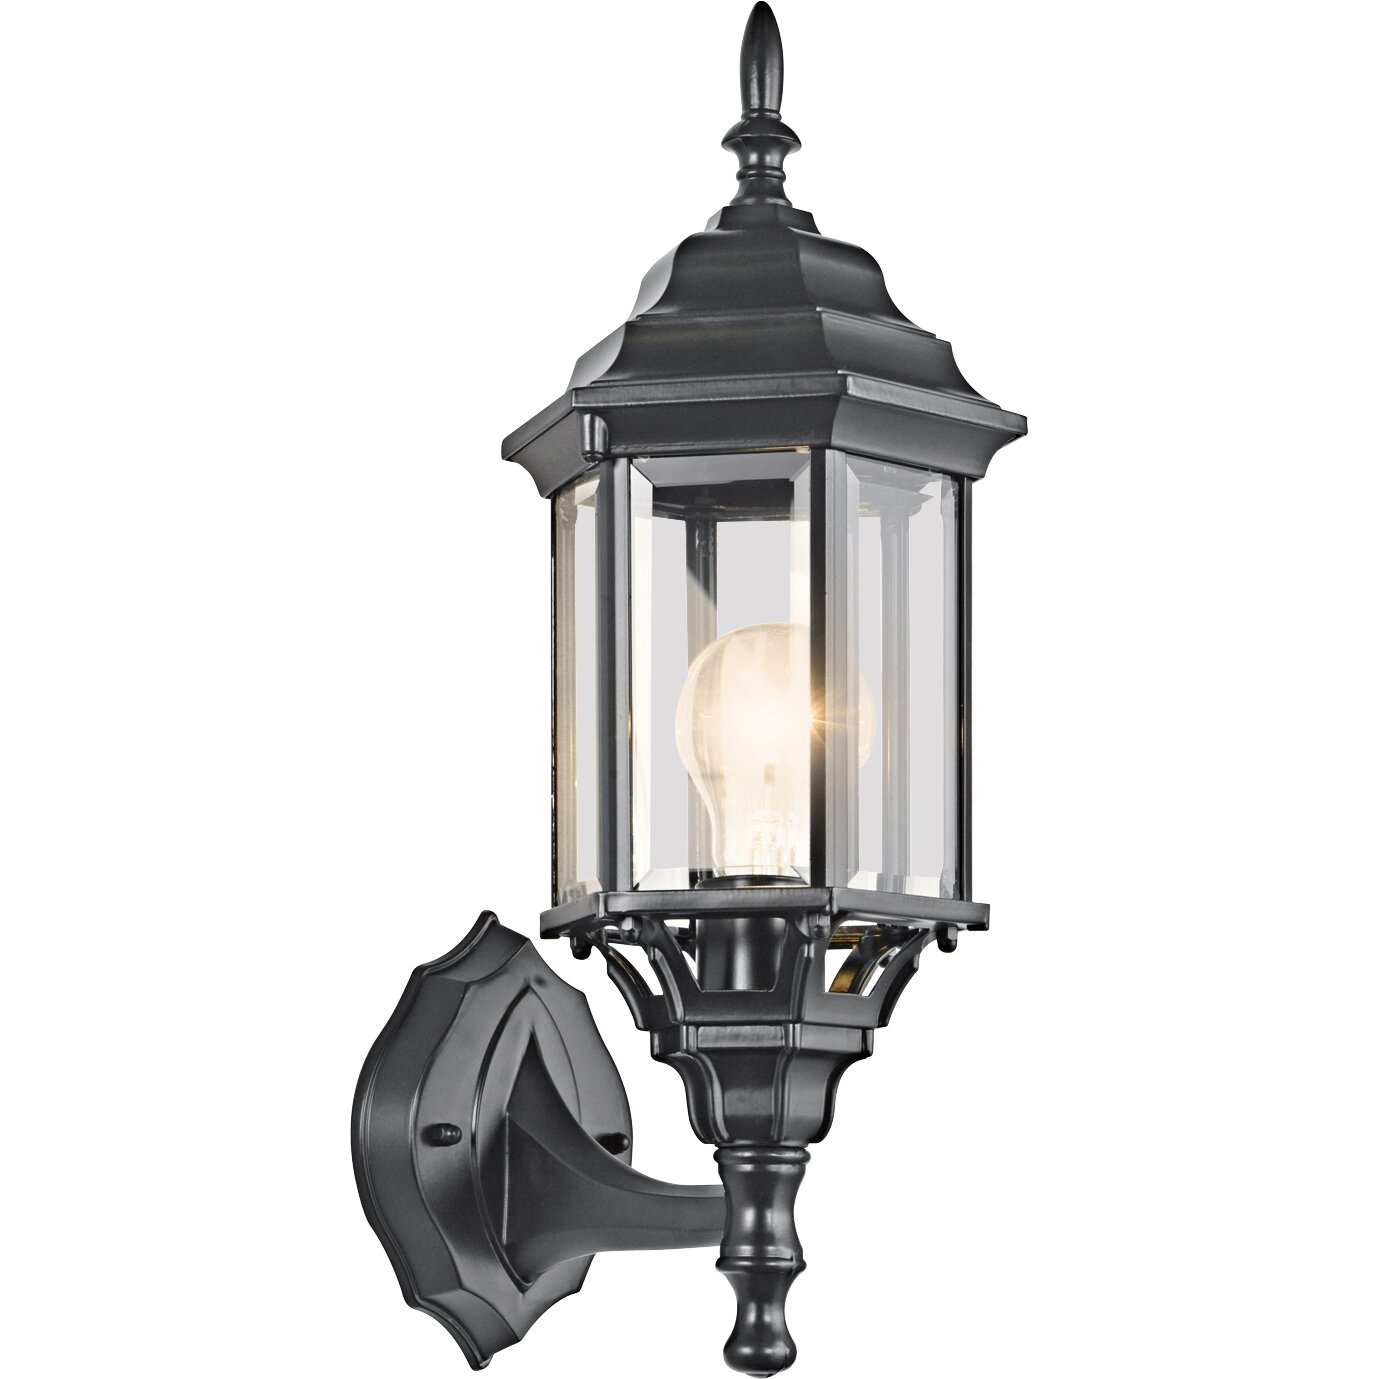 Kichler Chesapeake 1 Light Outdoor Wall Lantern & Reviews